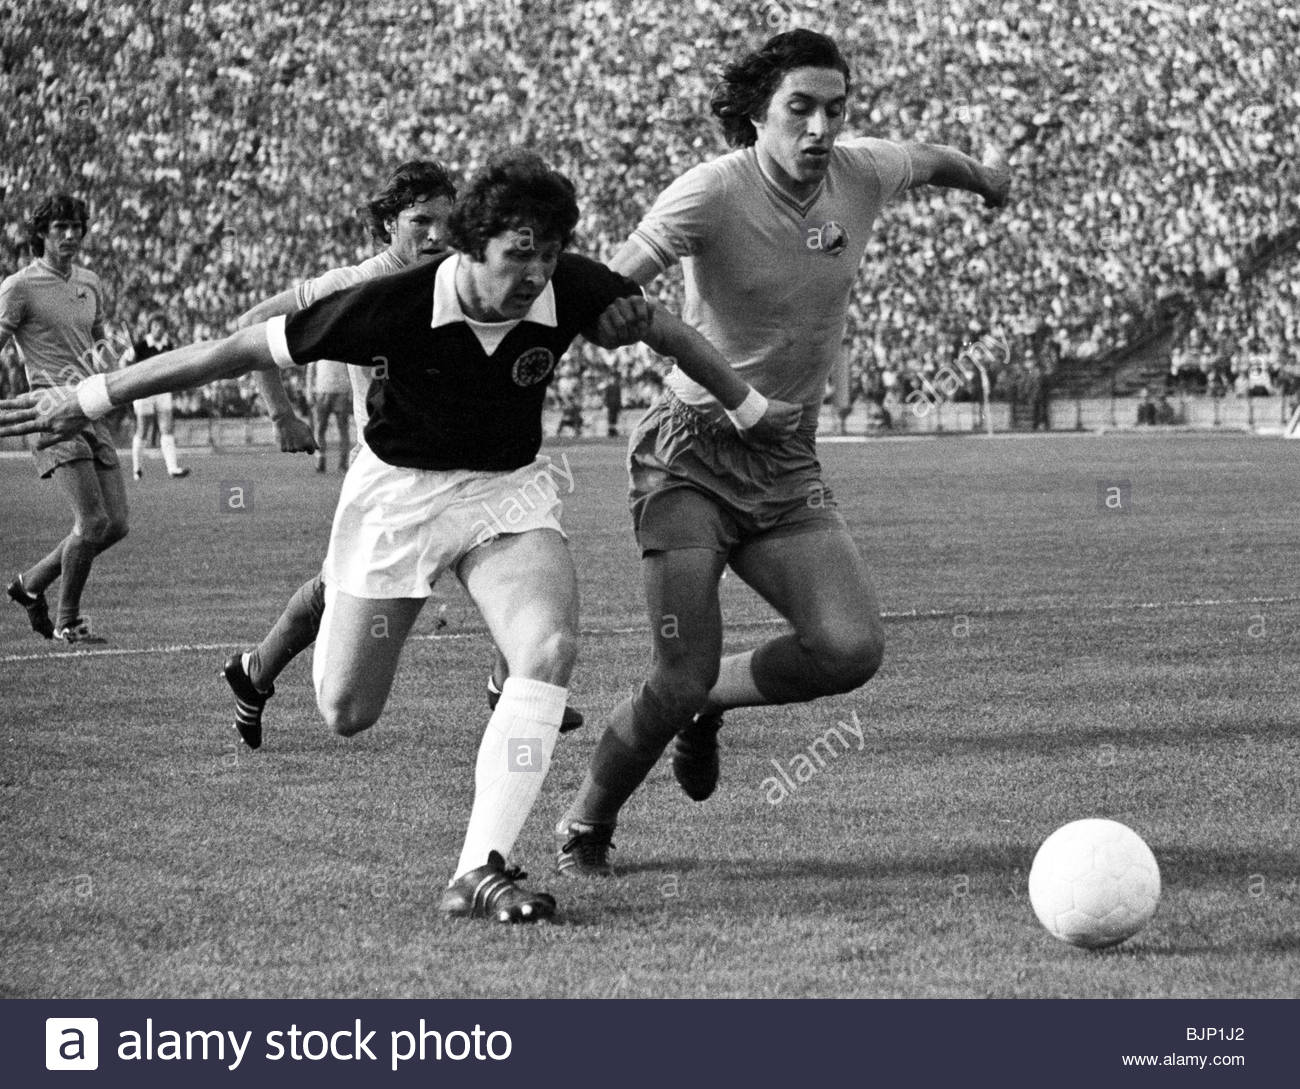 01/06/75 EUROPEAN CHAMPIONSHIP QUALIFIER ROMANIA V SCOTLAND (1-1) 23 AUGUST STADIONUL - BUCHAREST Scotland's - Stock Image